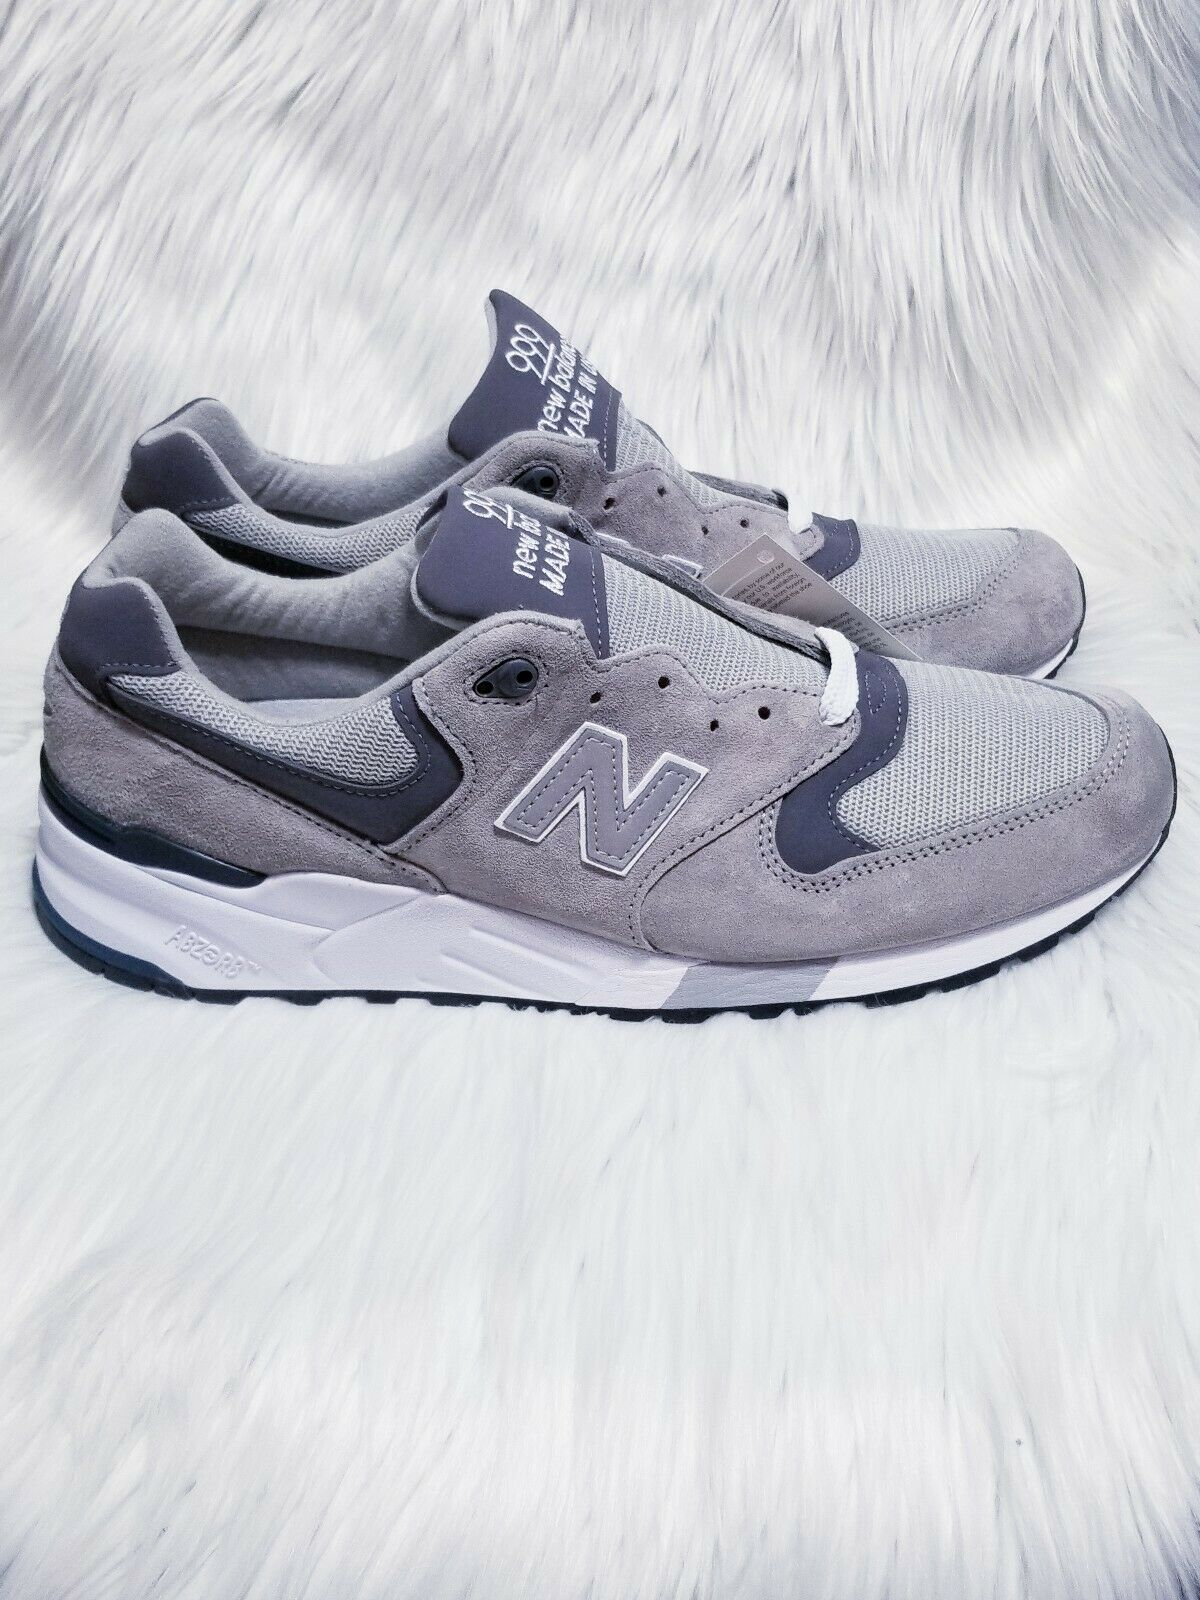 New Balance 999 M999CGL Grey Pewter Suede White Running shoes Mens Size 4 D